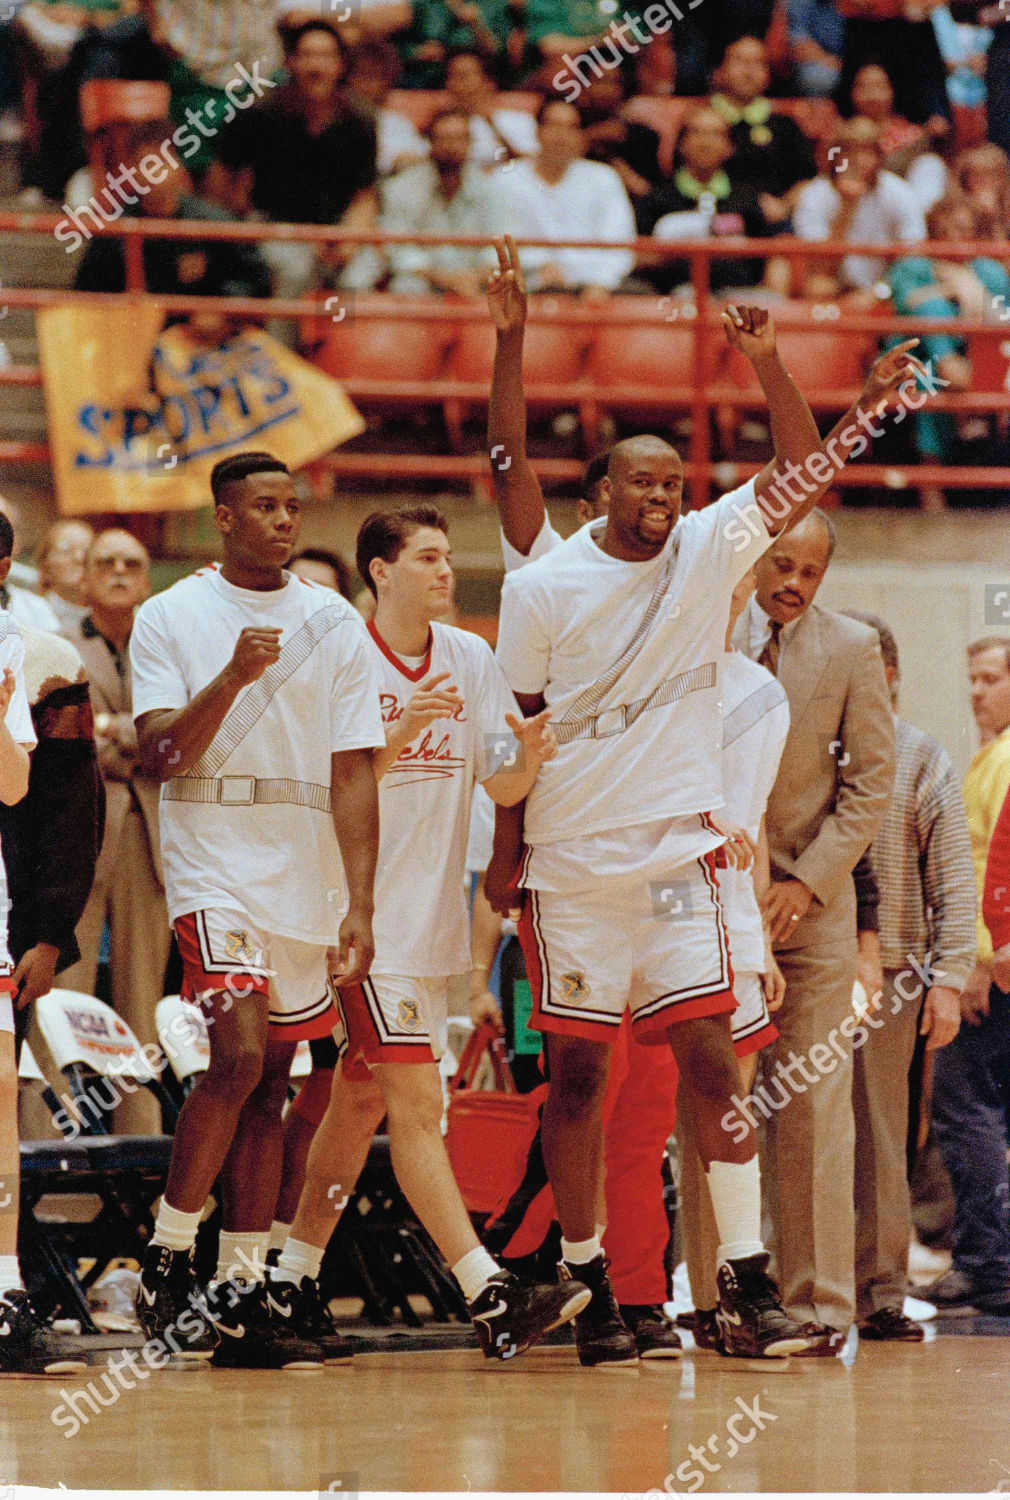 NCAA UNLV Georgetown 1991 Tucson USA Stock Image By Lenny Ignelzi For Editorial Use Mar 17